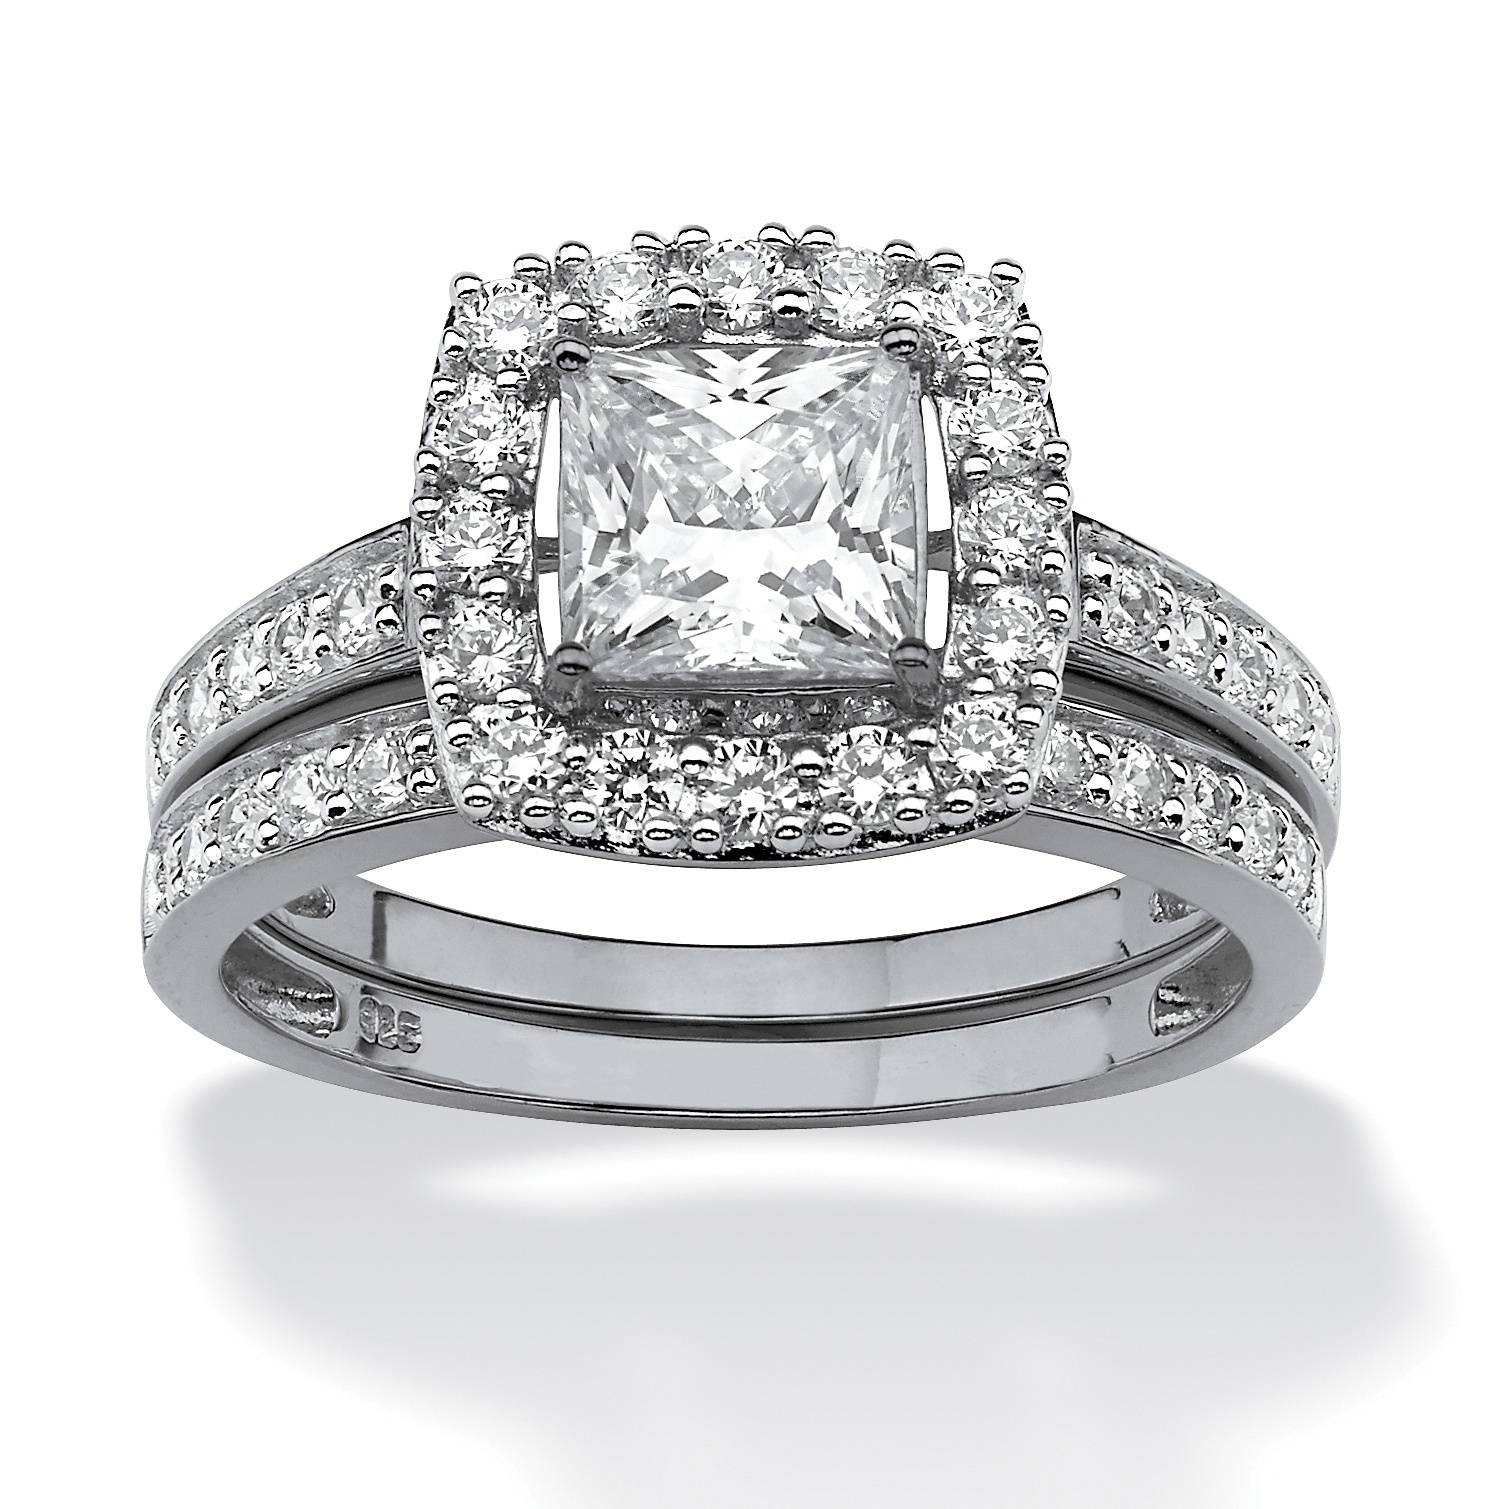 Cz 18Kt White Gold Bridal Engagement Ring – Walmart With Walmart White Gold Wedding Bands (View 6 of 15)